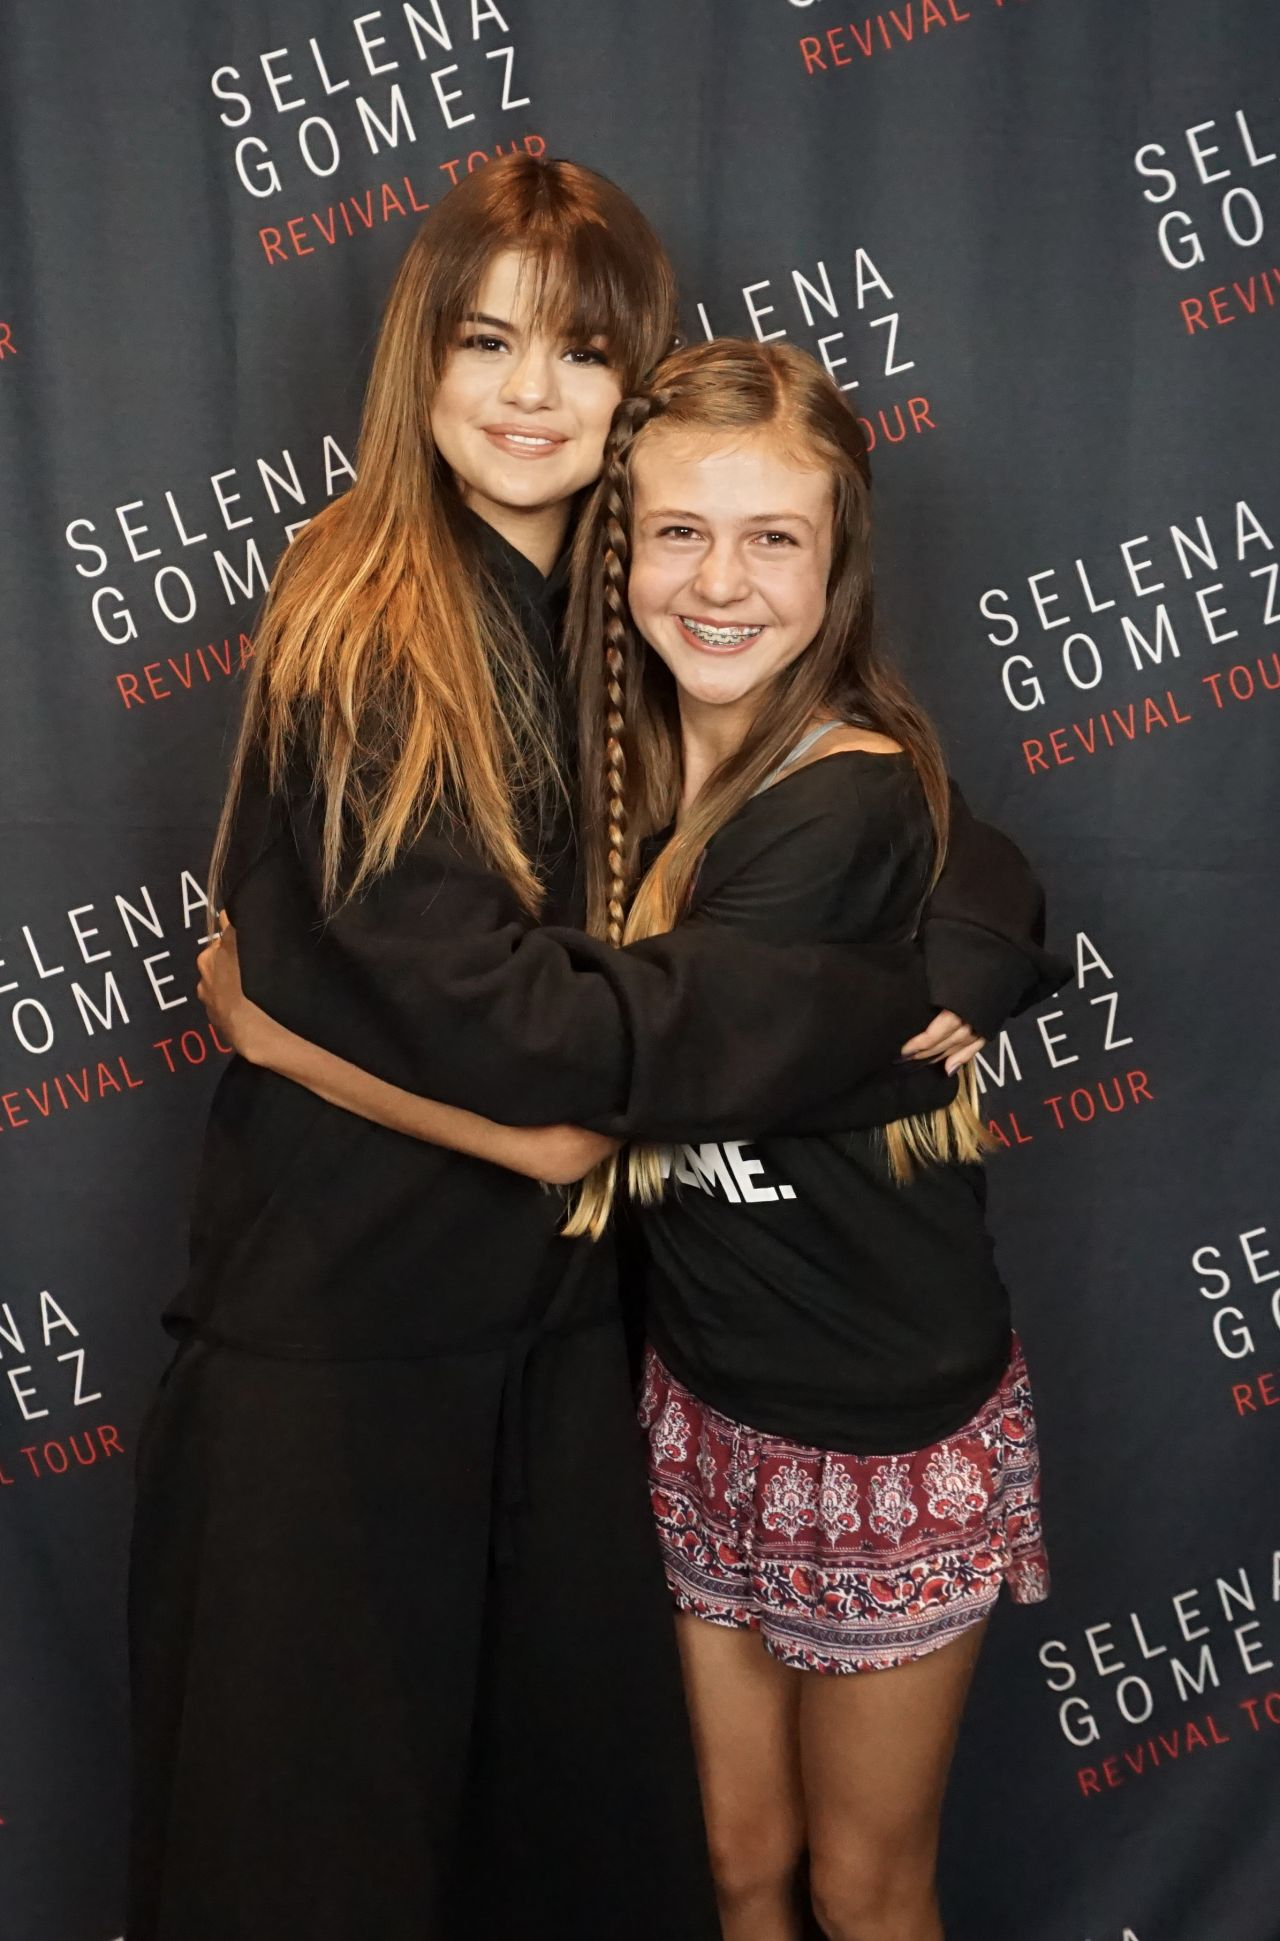 Selena gomez meet greet at the revival world tour at the xcel selena gomez meet greet at the revival world tour at the xcel energy center in minneapolis minnesota 6282016 m4hsunfo